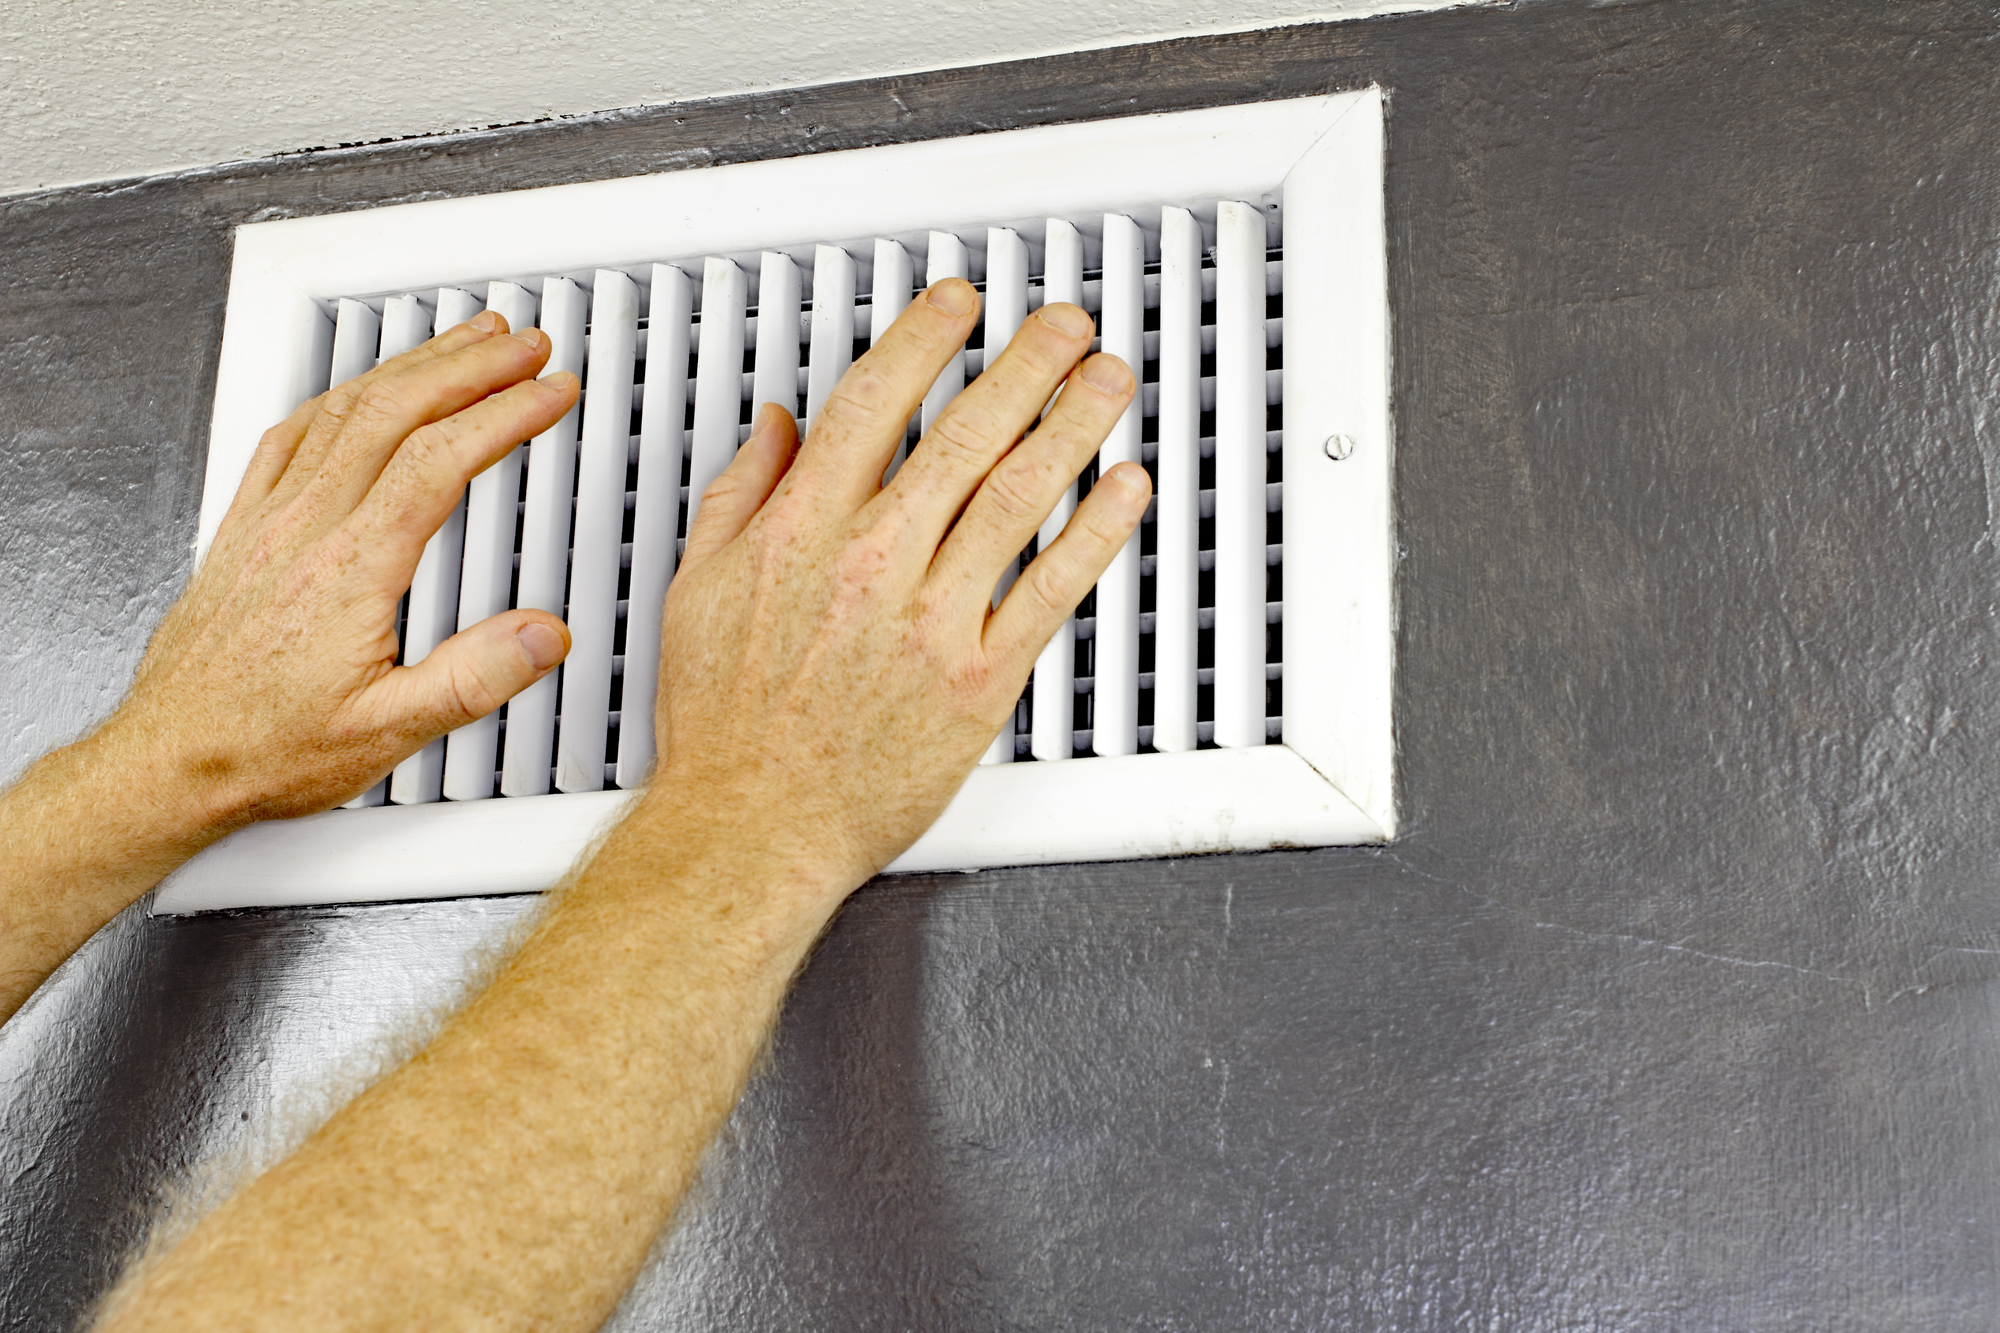 Can You Save Money by Closing Heating Vents?